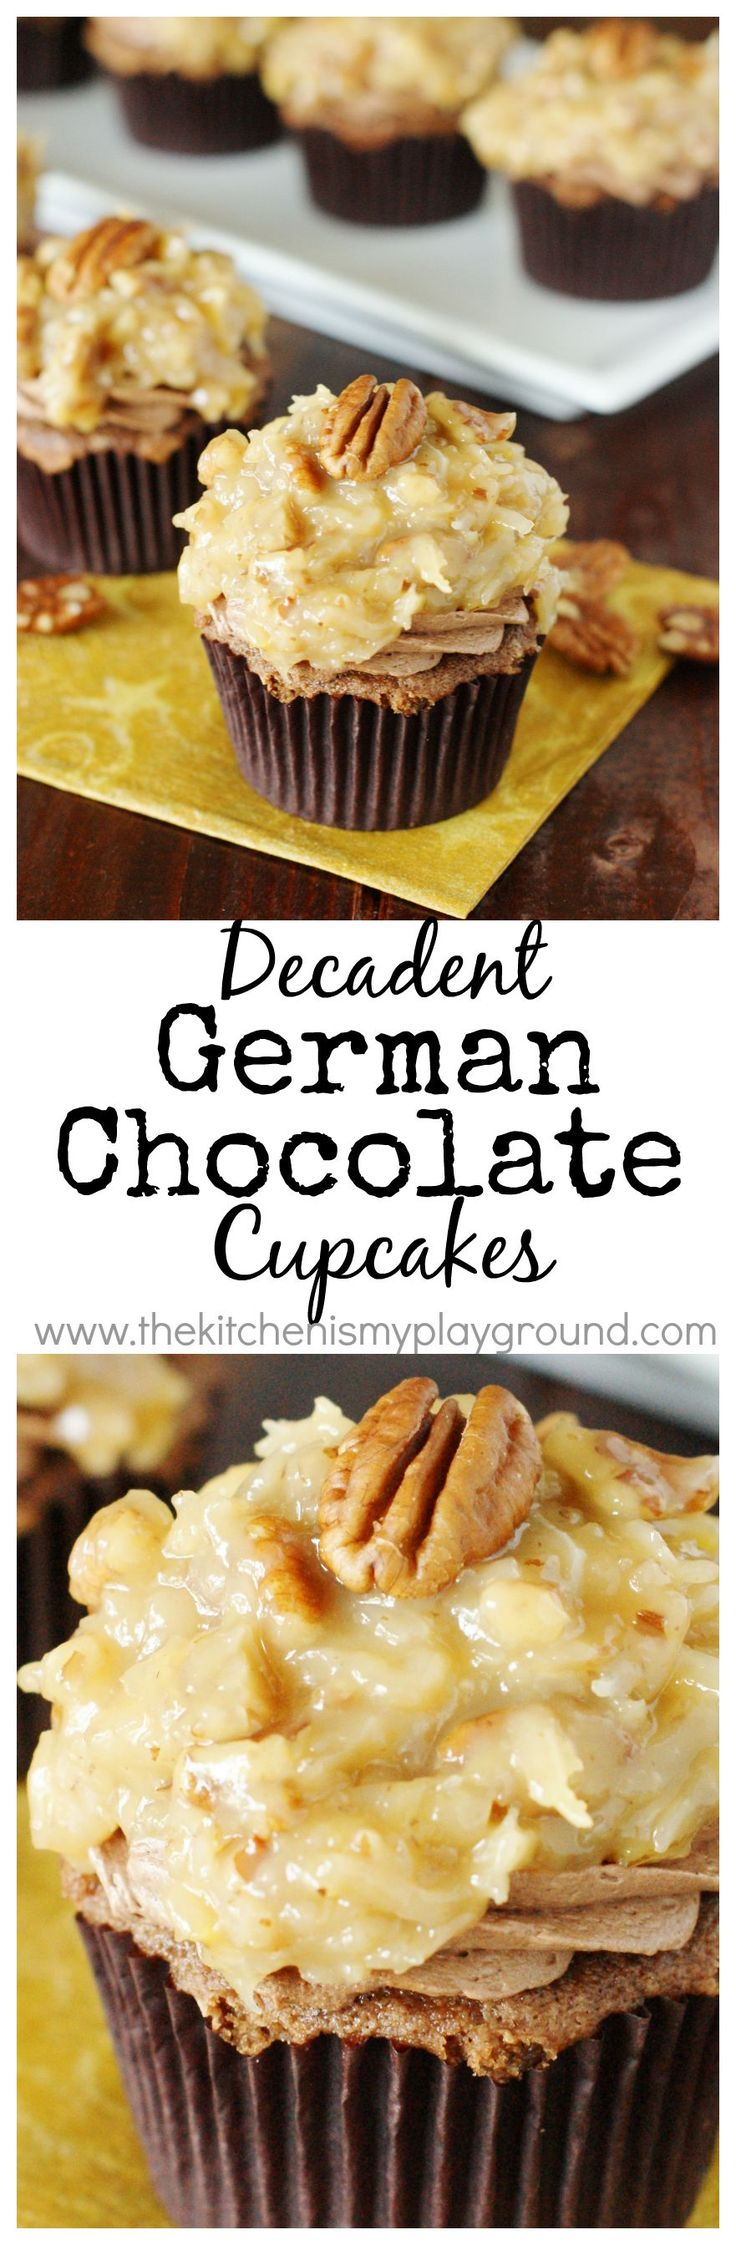 German Chocolate Cupcakes ~ chocolate cake, creamy chocolate frosting, & ooey-gooey coconut-pecan topping in every bite!   #Germanchocolate #cupcakes www.thekitchenismyplayground.com